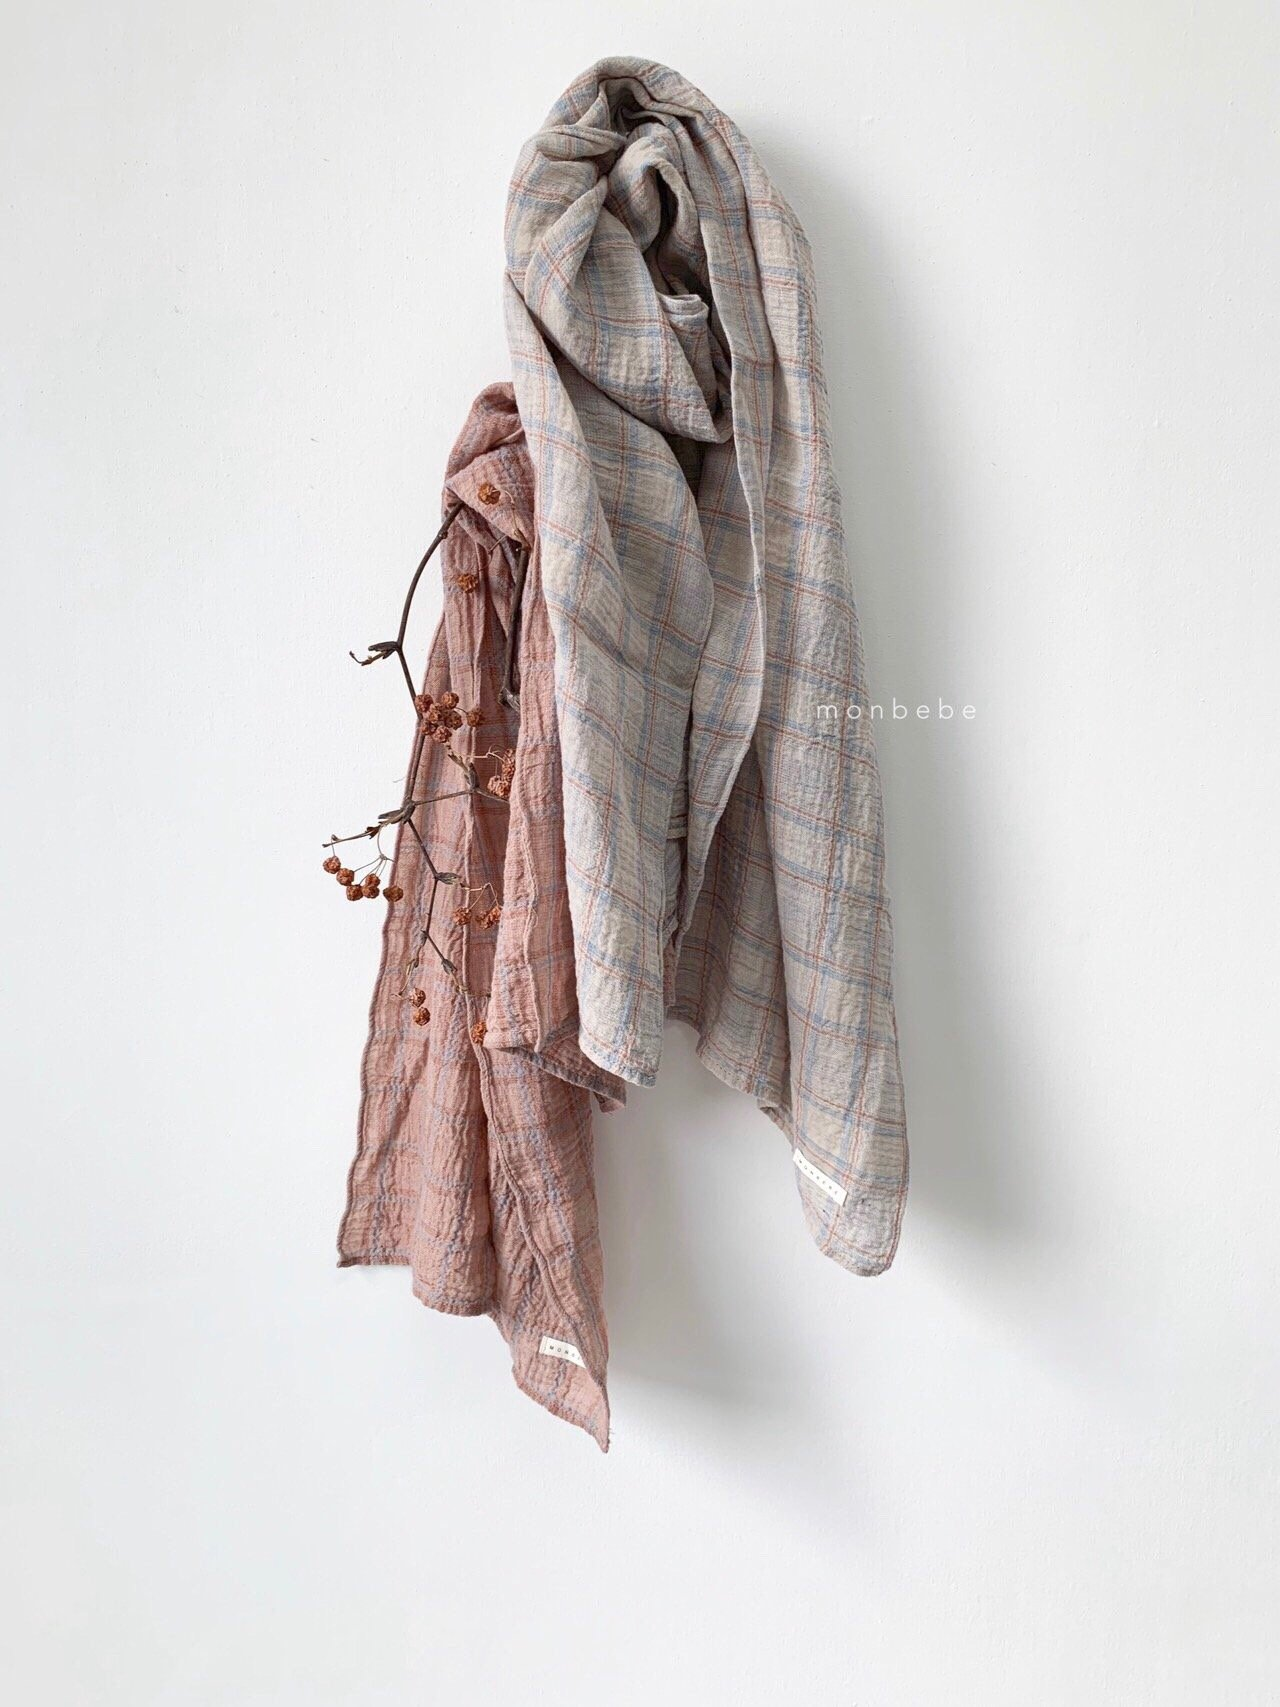 MONBEBE - Korean Children Fashion - #Kfashion4kids - Check Scarf